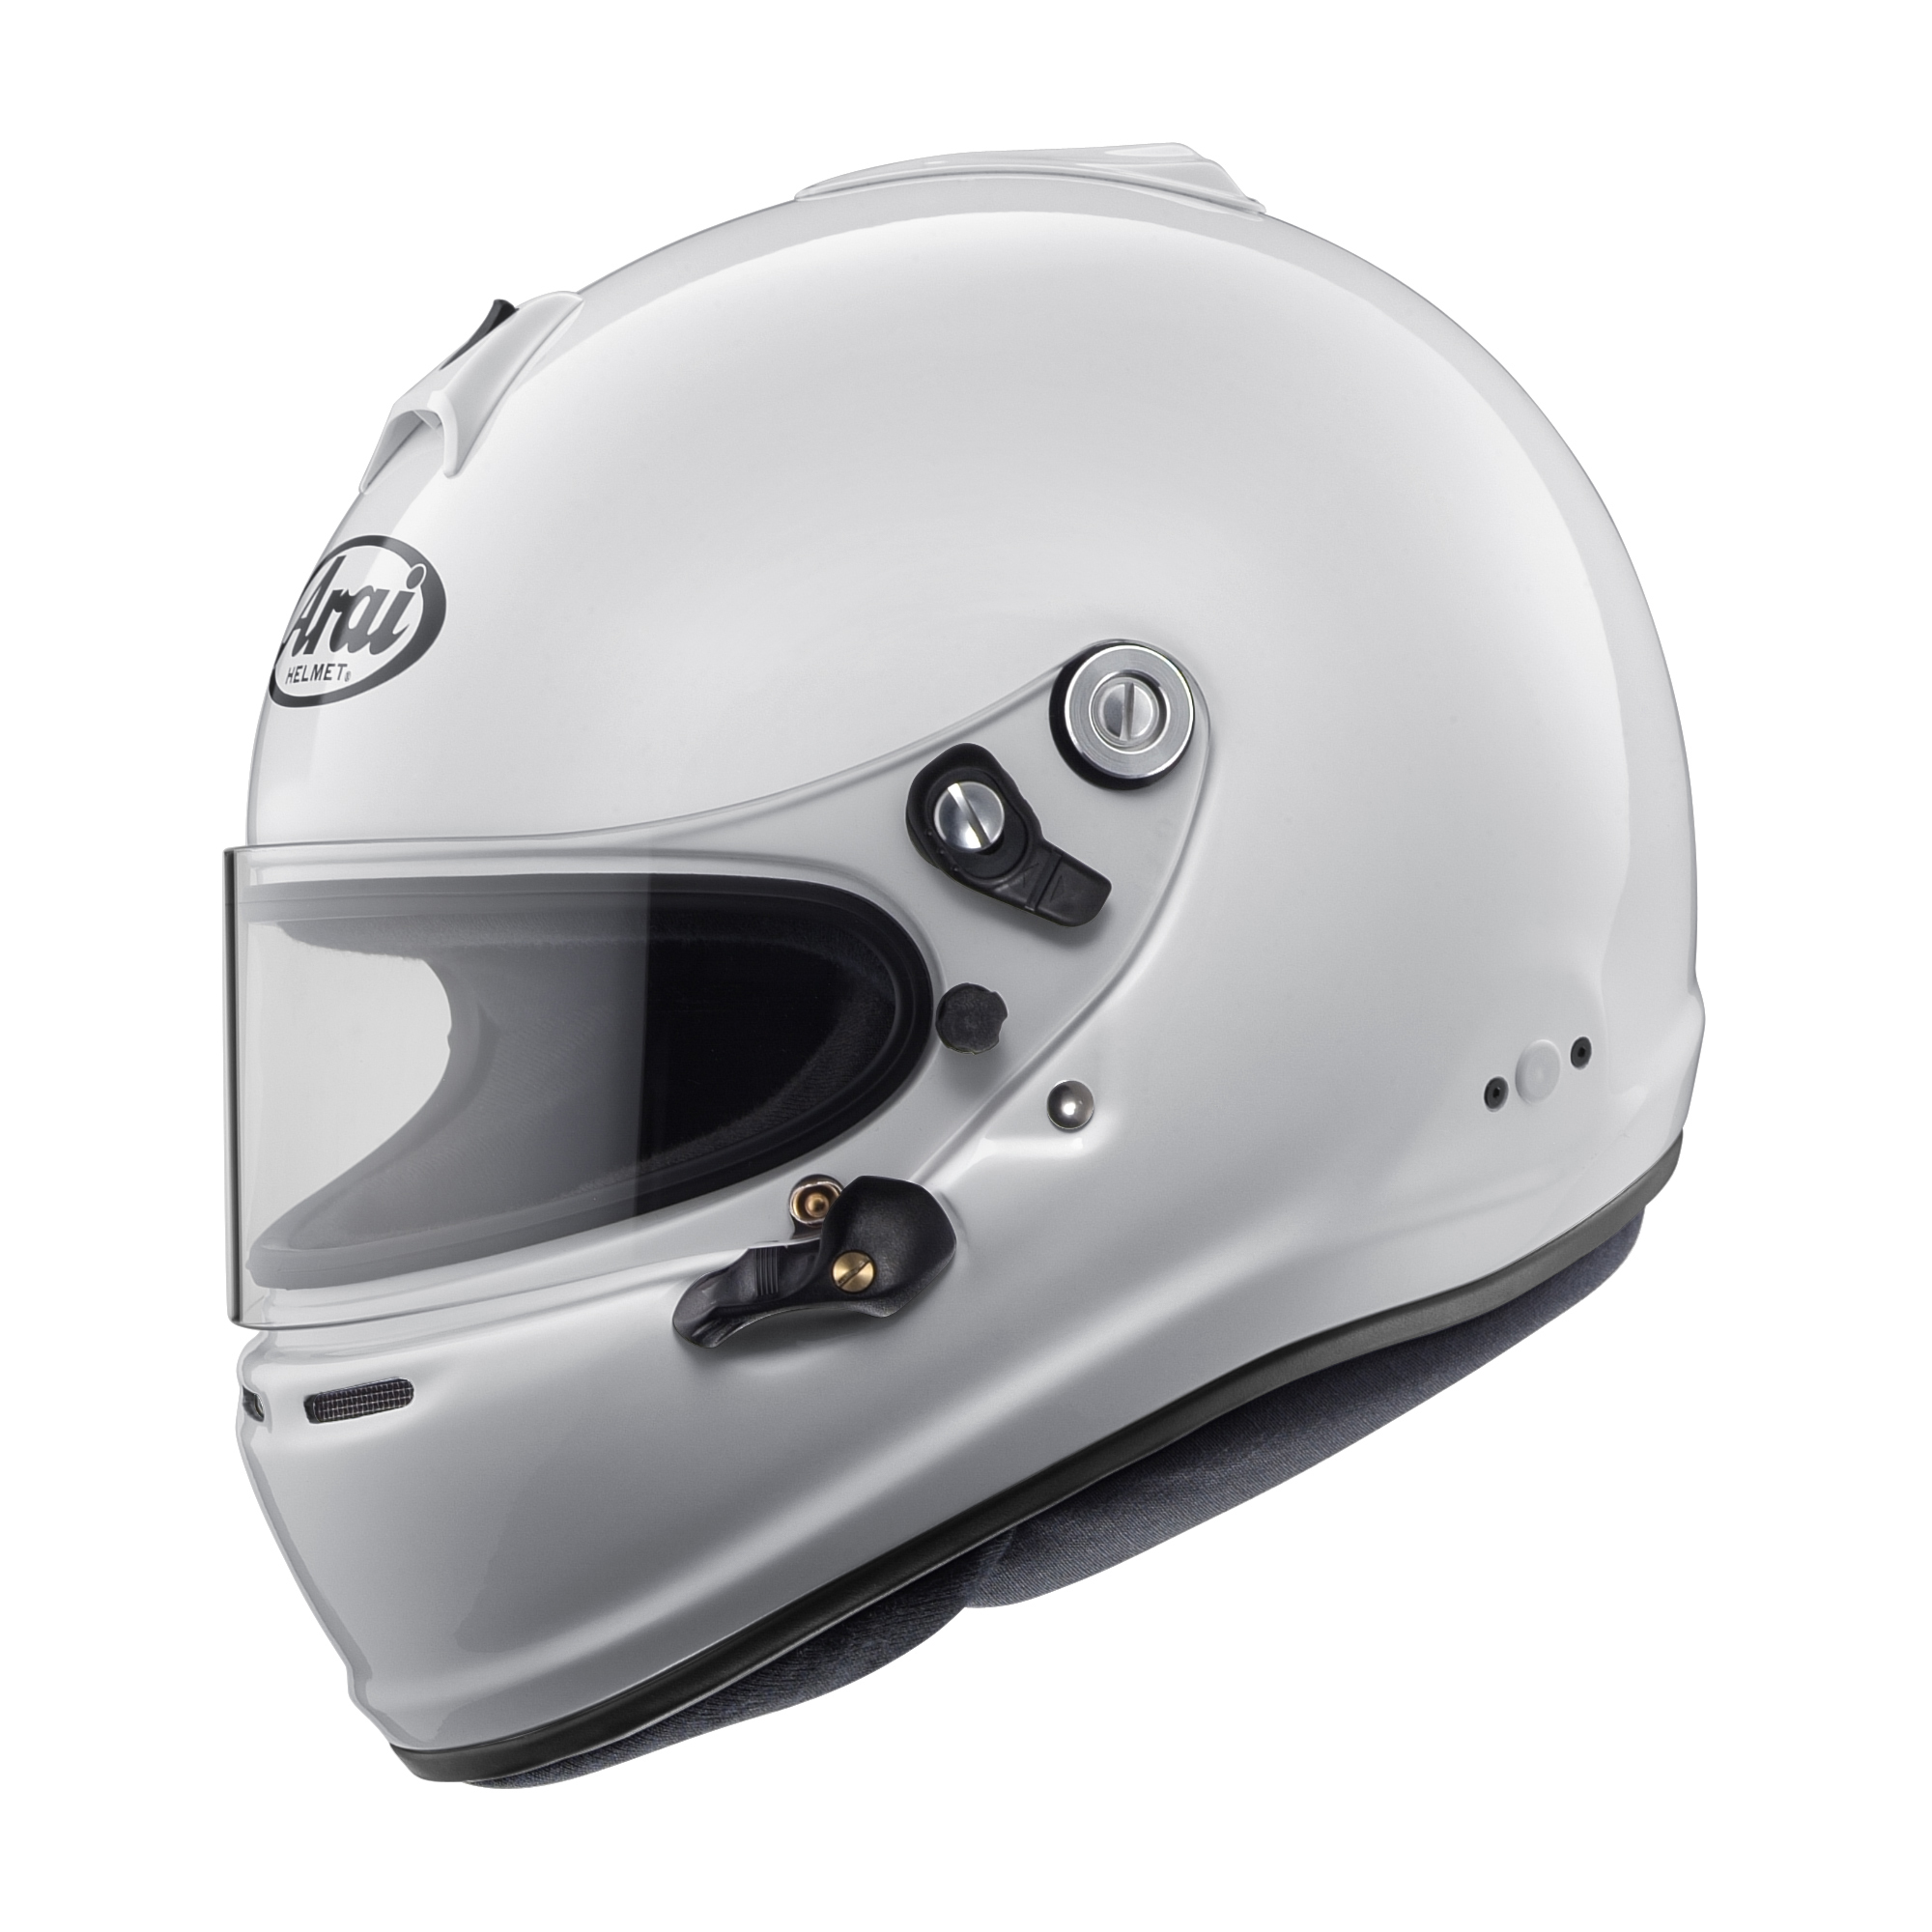 Arai Helmet 685311143471 Helmet, GP-6S, Snell SA2015, FIA Approved, Head and Neck Support Ready, White, X-Large, Each